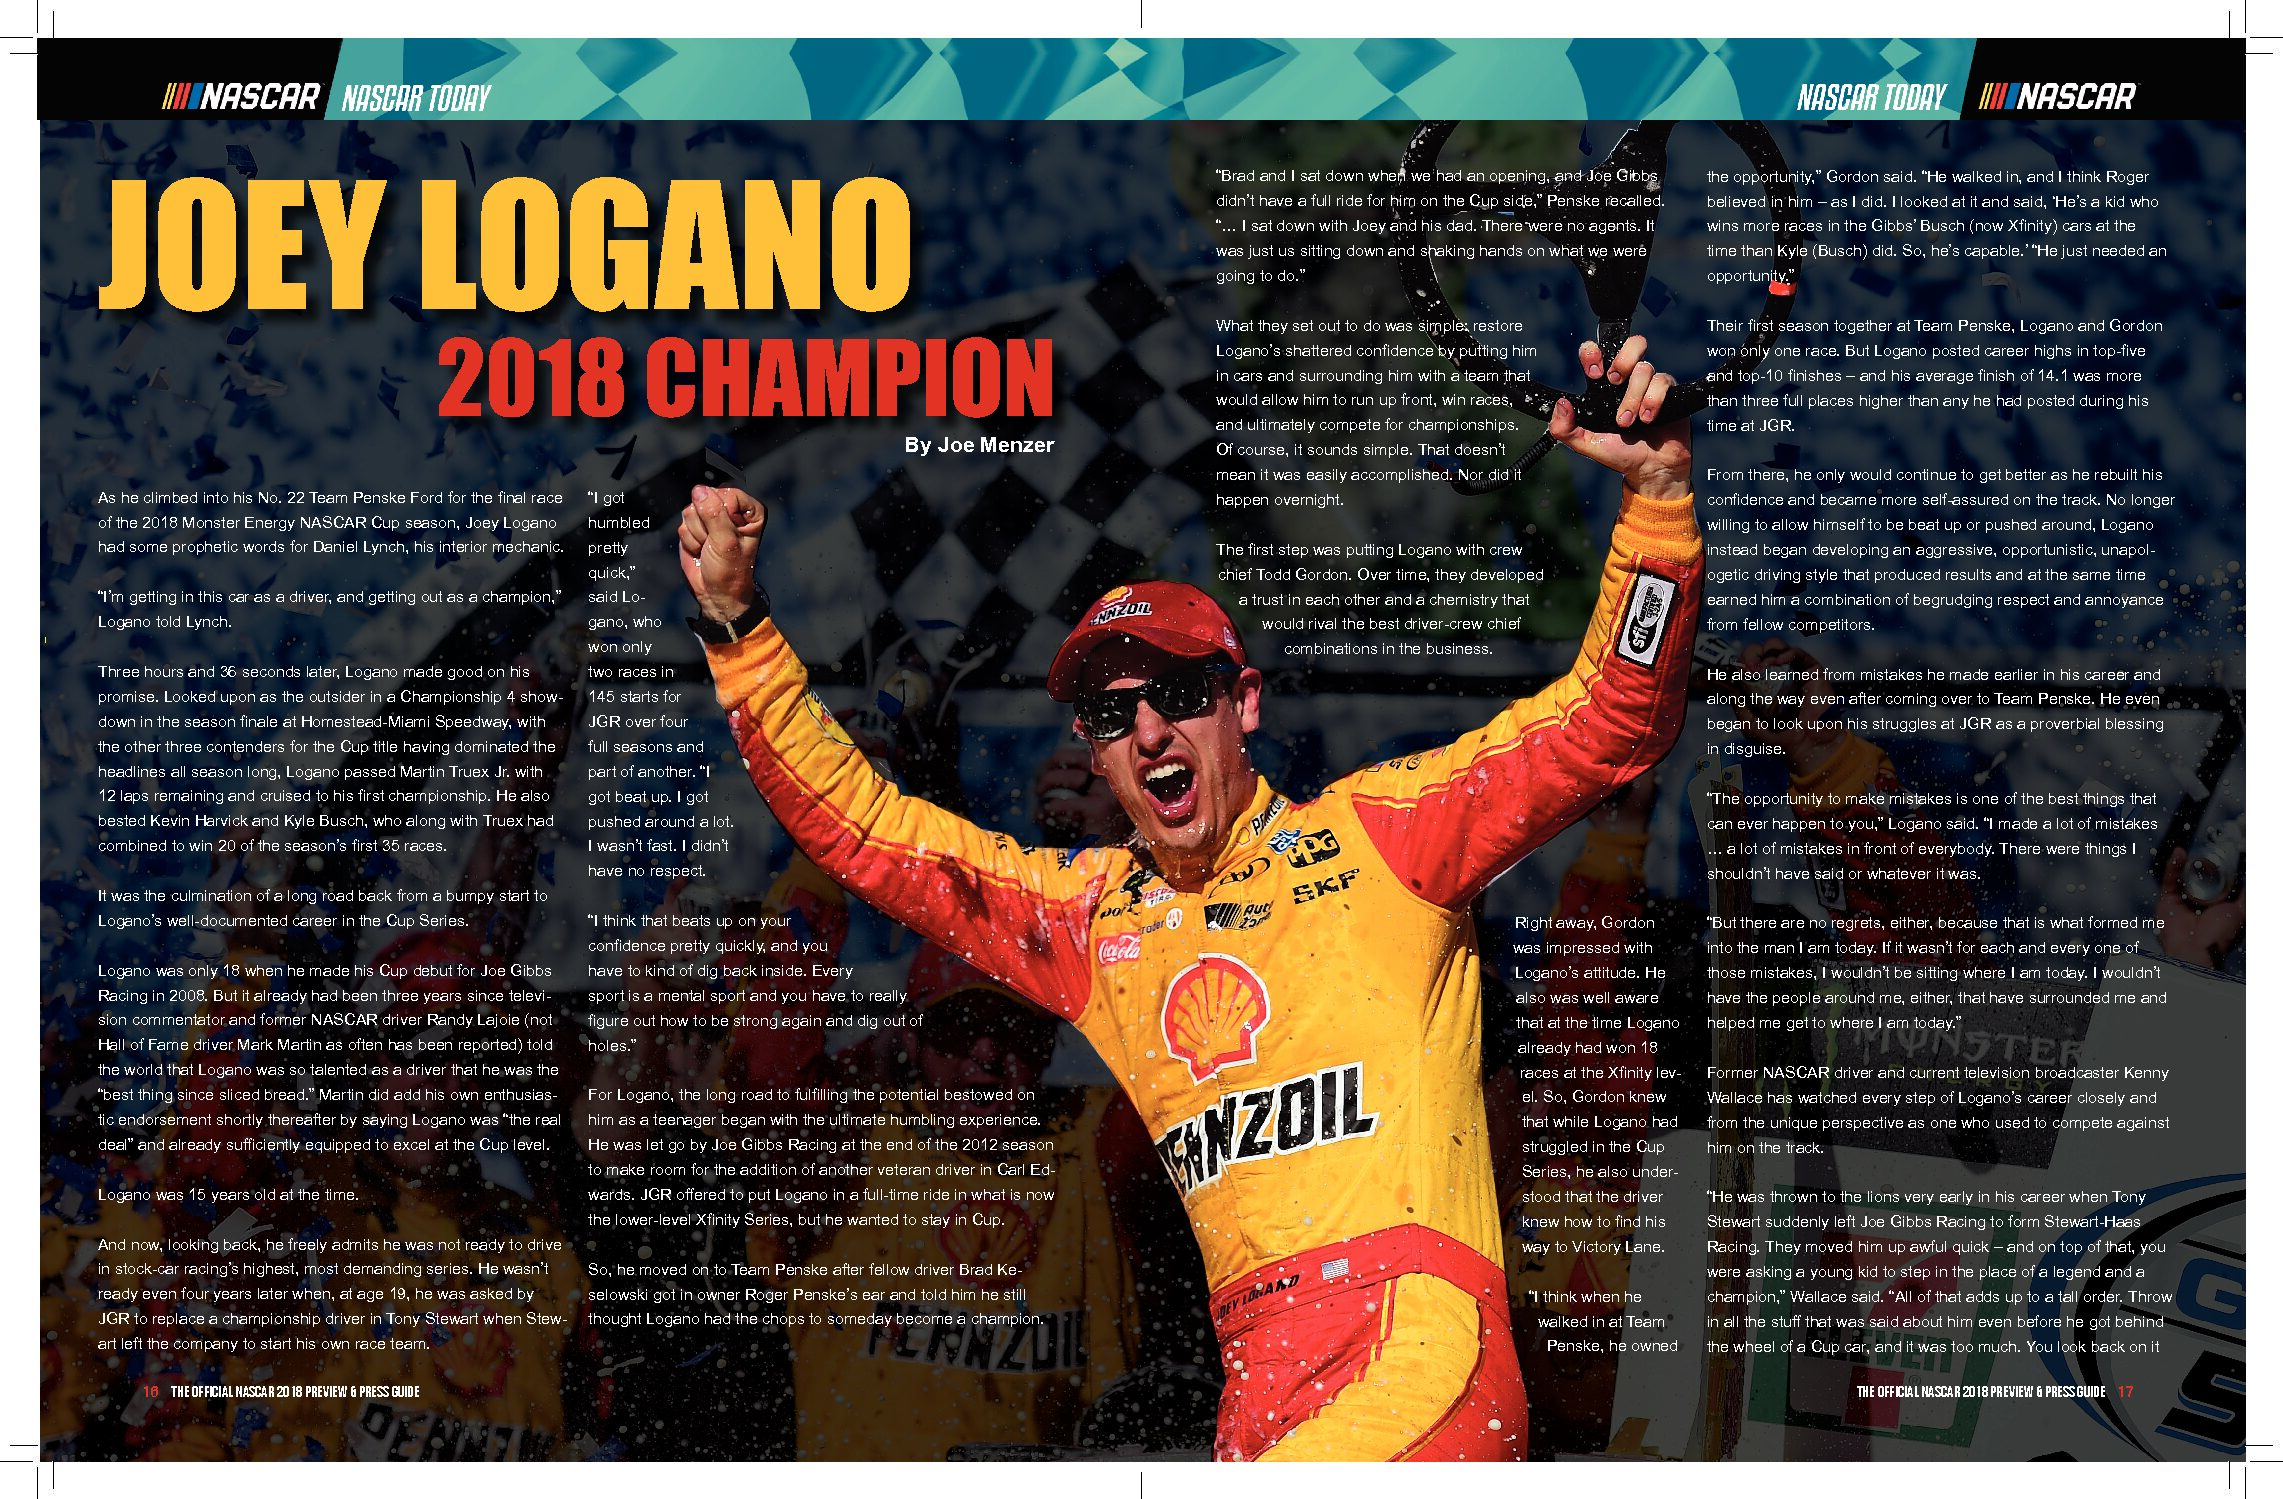 joey-logano-spread